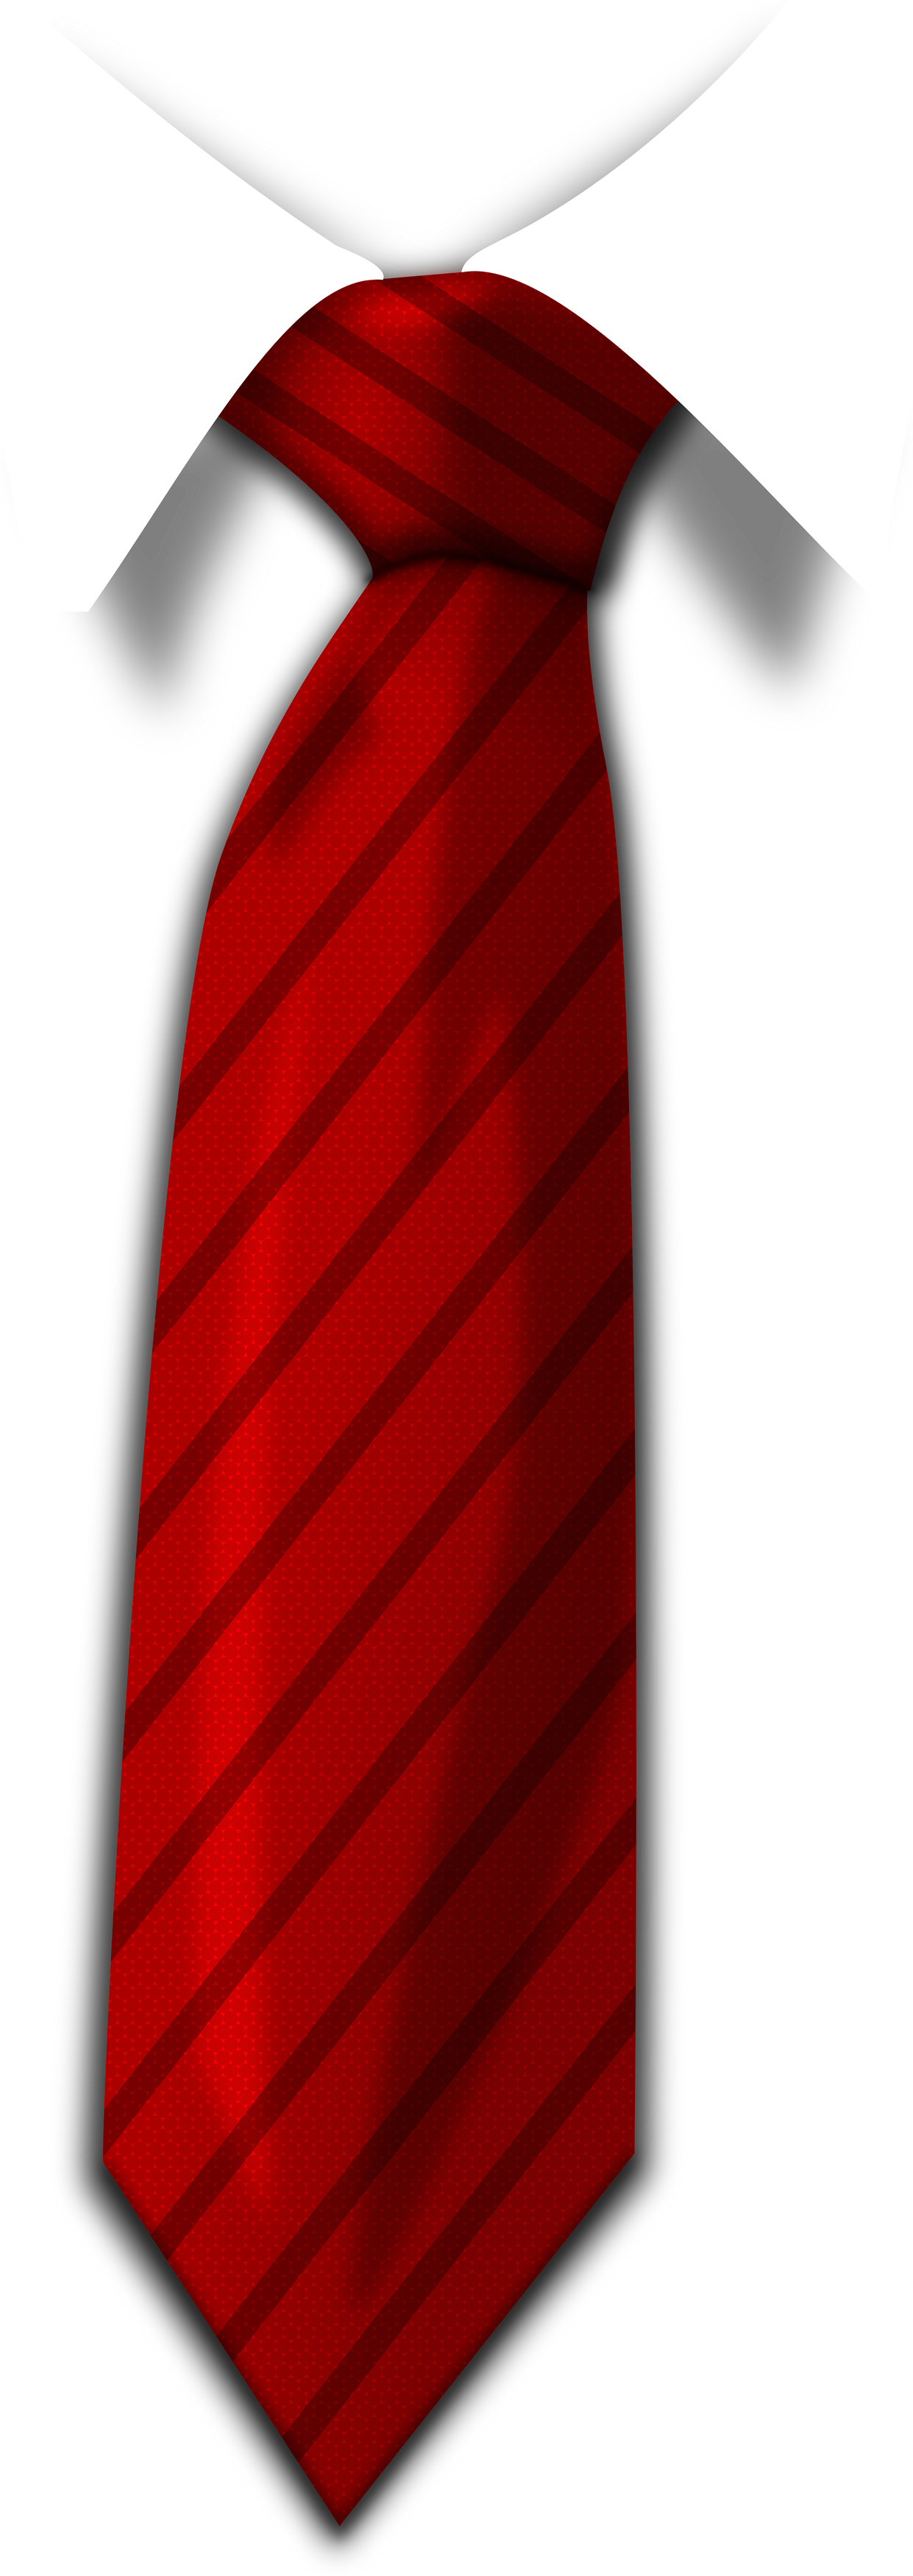 Tie PNG image free download.